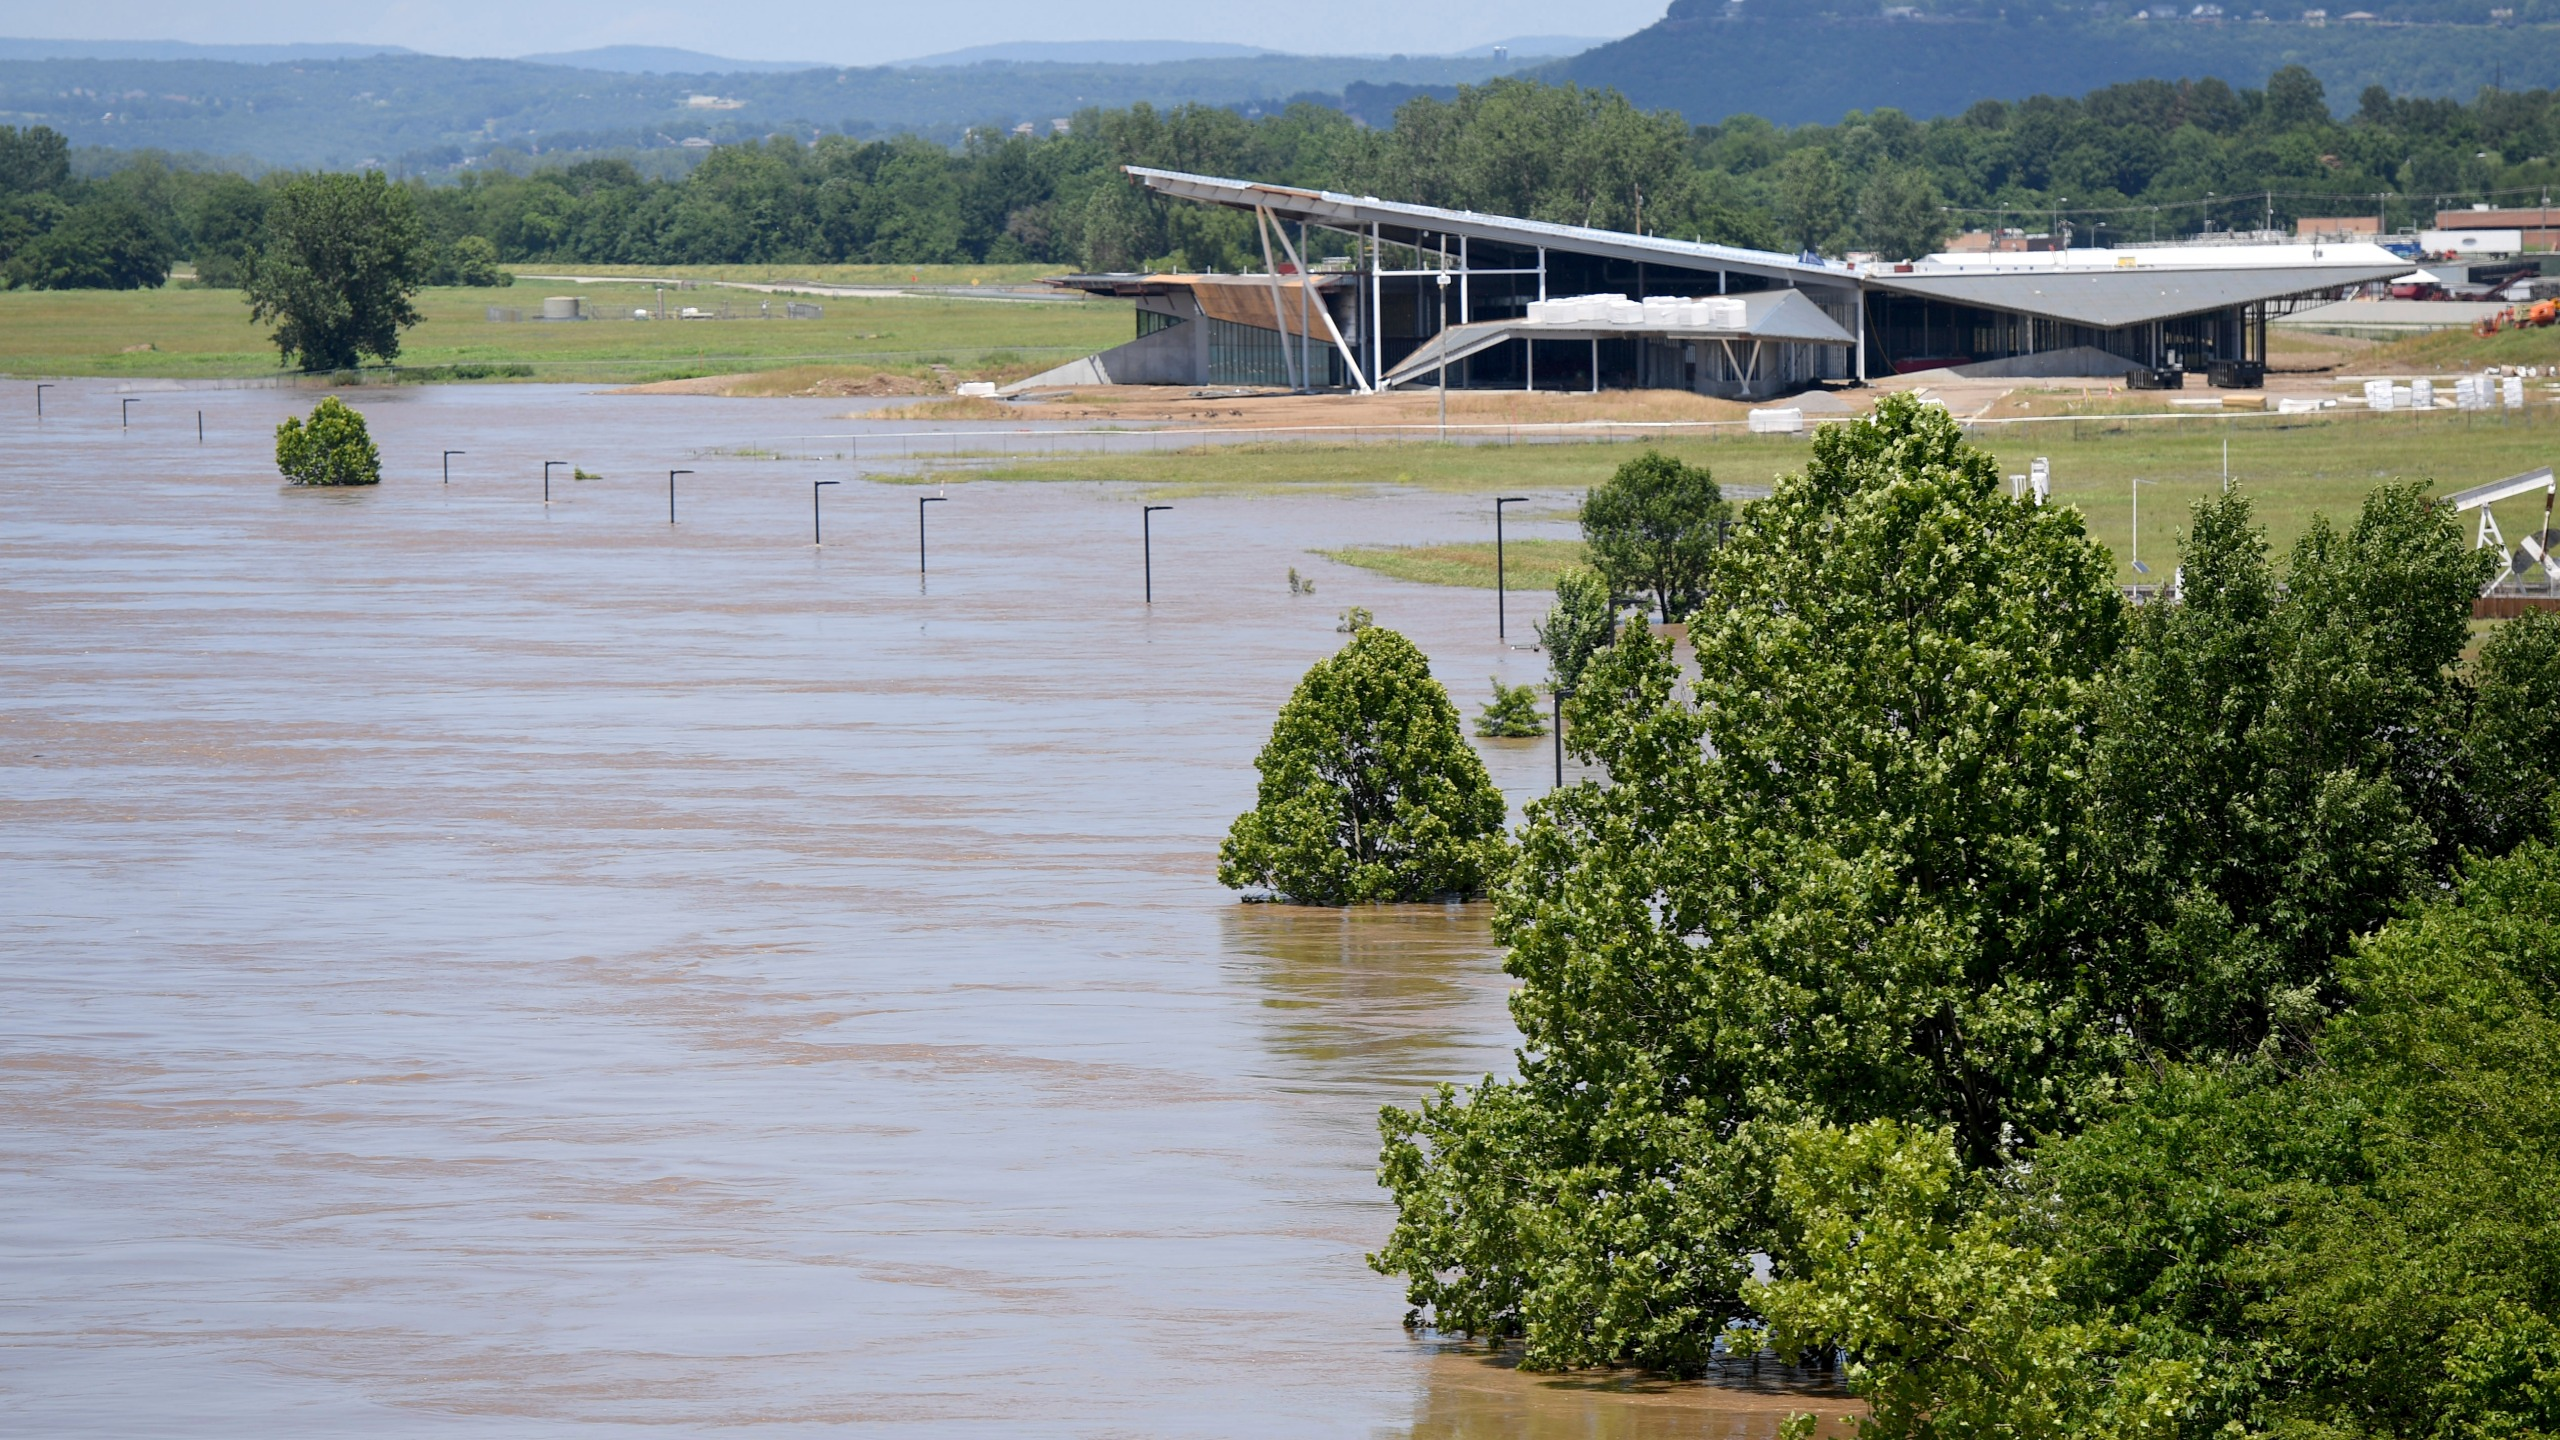 Spring_Flooding_Arkansas_13793-159532.jpg55217878